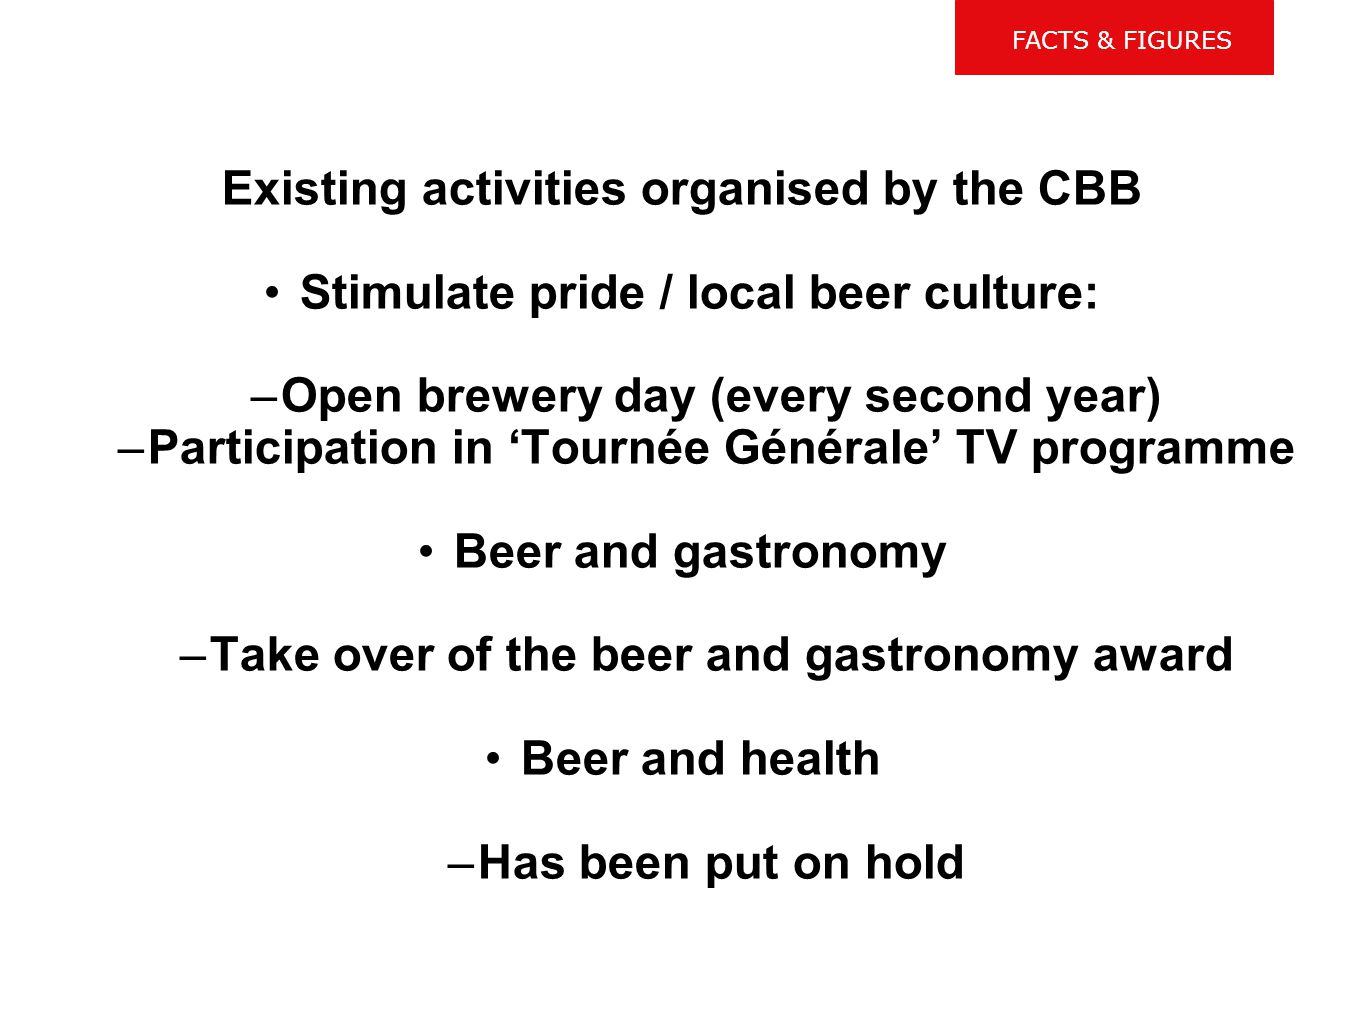 Existing initiatives at CBB level: Existing activities organised by the CBB Stimulate pride / local beer culture: –Open brewery day (every second year) –Participation in 'Tournée Générale' TV programme Beer and gastronomy –Take over of the beer and gastronomy award Beer and health –Has been put on hold FACTS & FIGURES